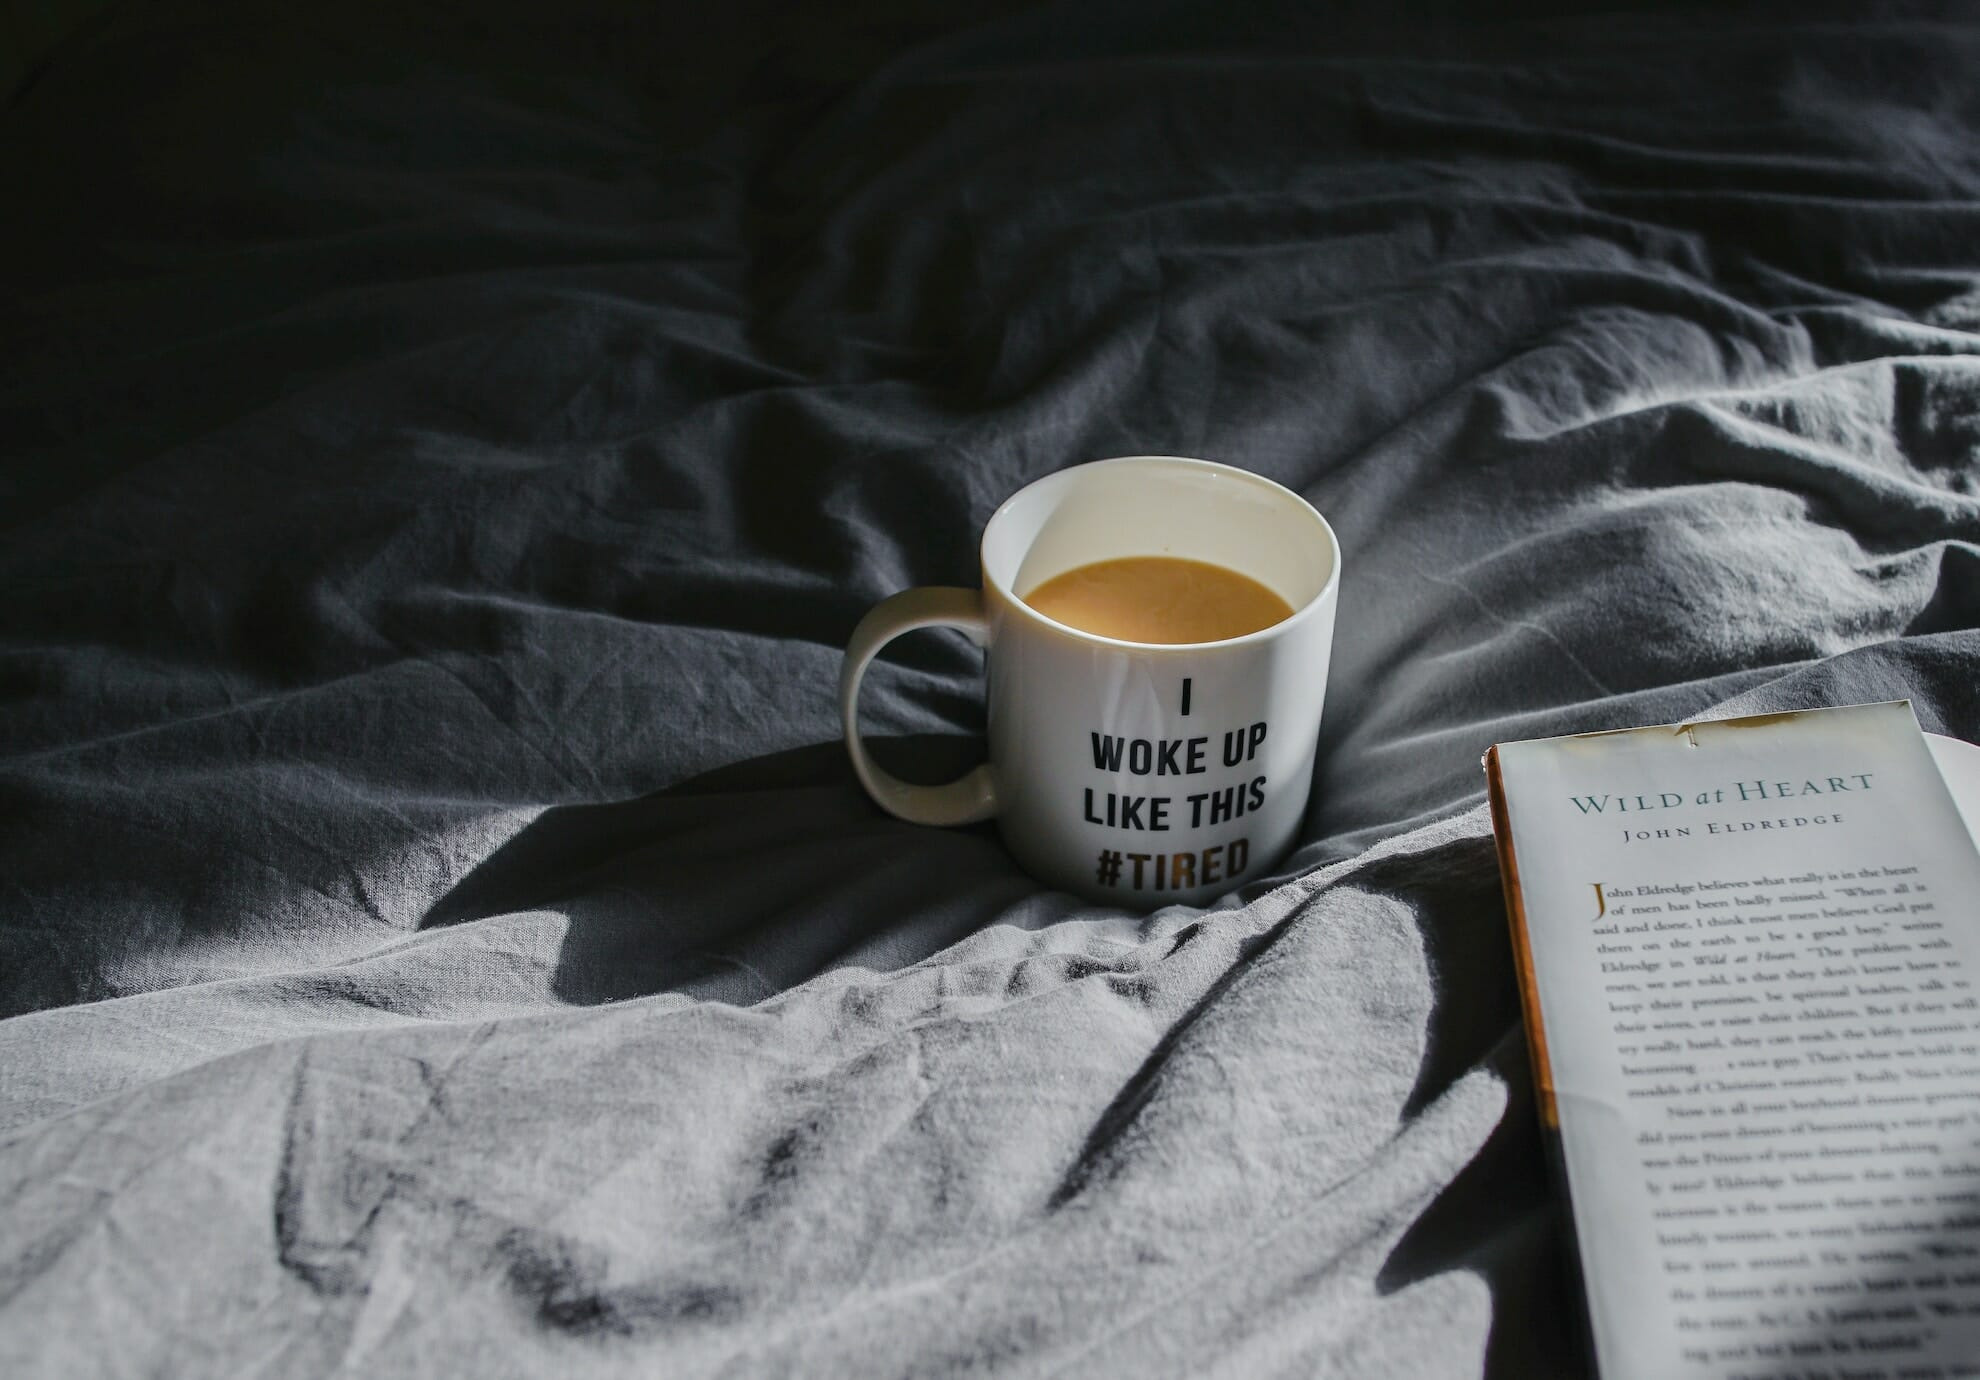 "Coffee cup on bed with quote ""i woke up like this #tired"""